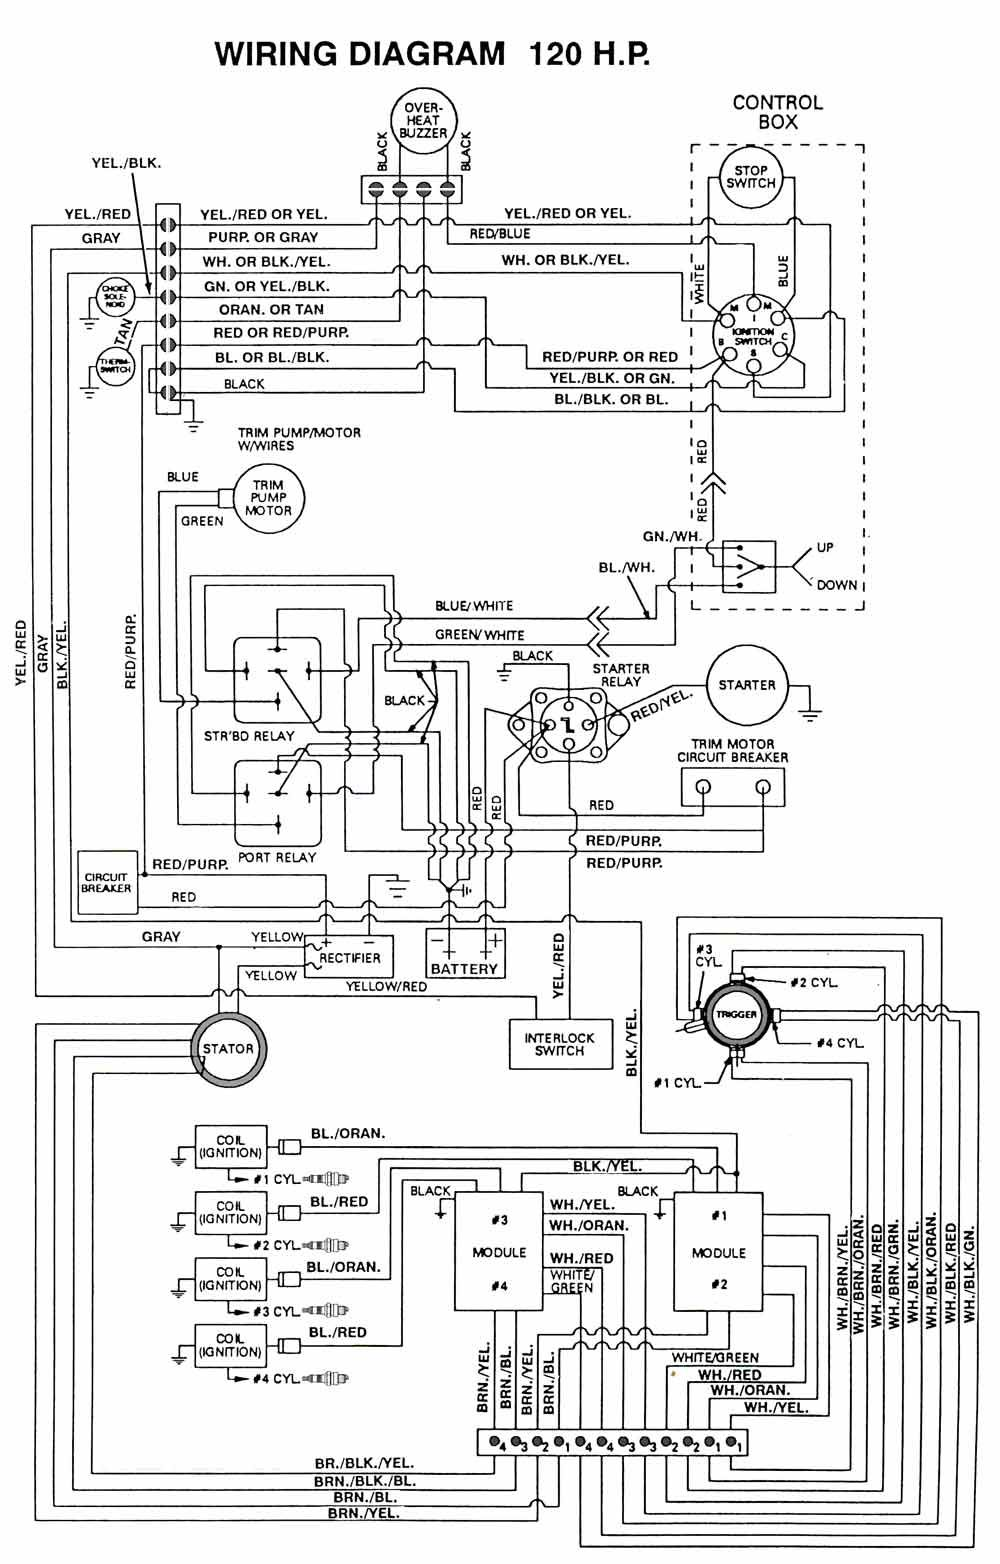 image result for wiring diagram for 1990 mercury force 120 hp ignition 4 cyl force wiring mercury marine ignition 4 cyl force wiring [ 1000 x 1564 Pixel ]